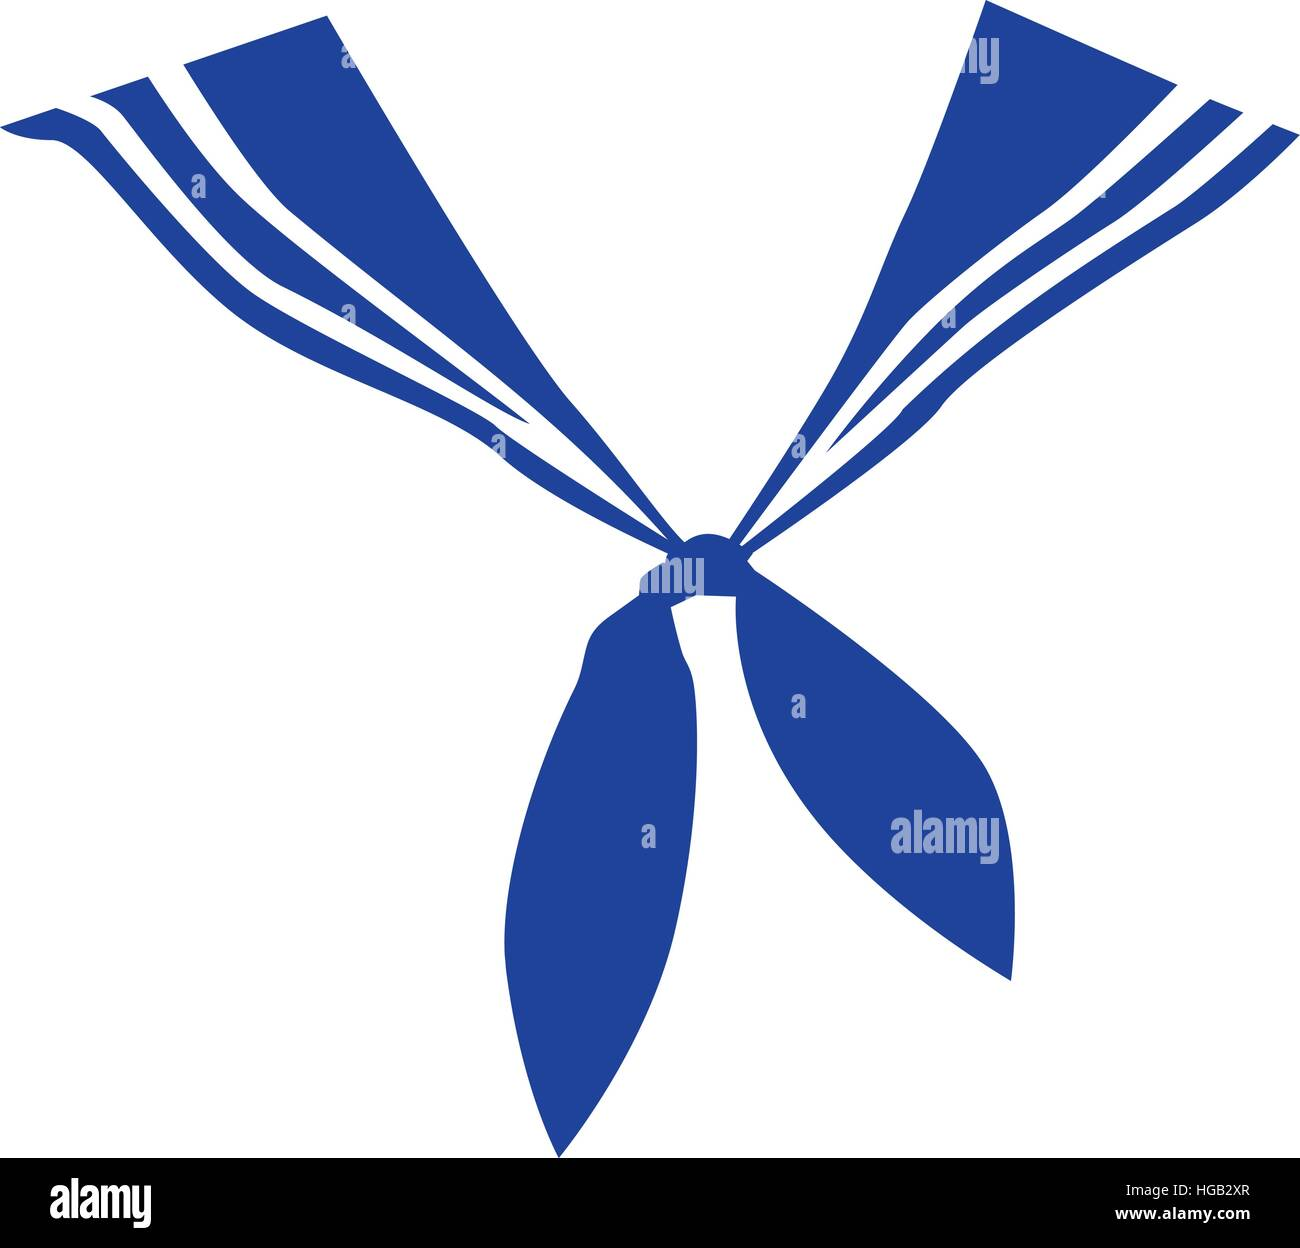 Sailor stock photos illustrations and vector art - Sailor Collar Stock Vector Sailor Collar